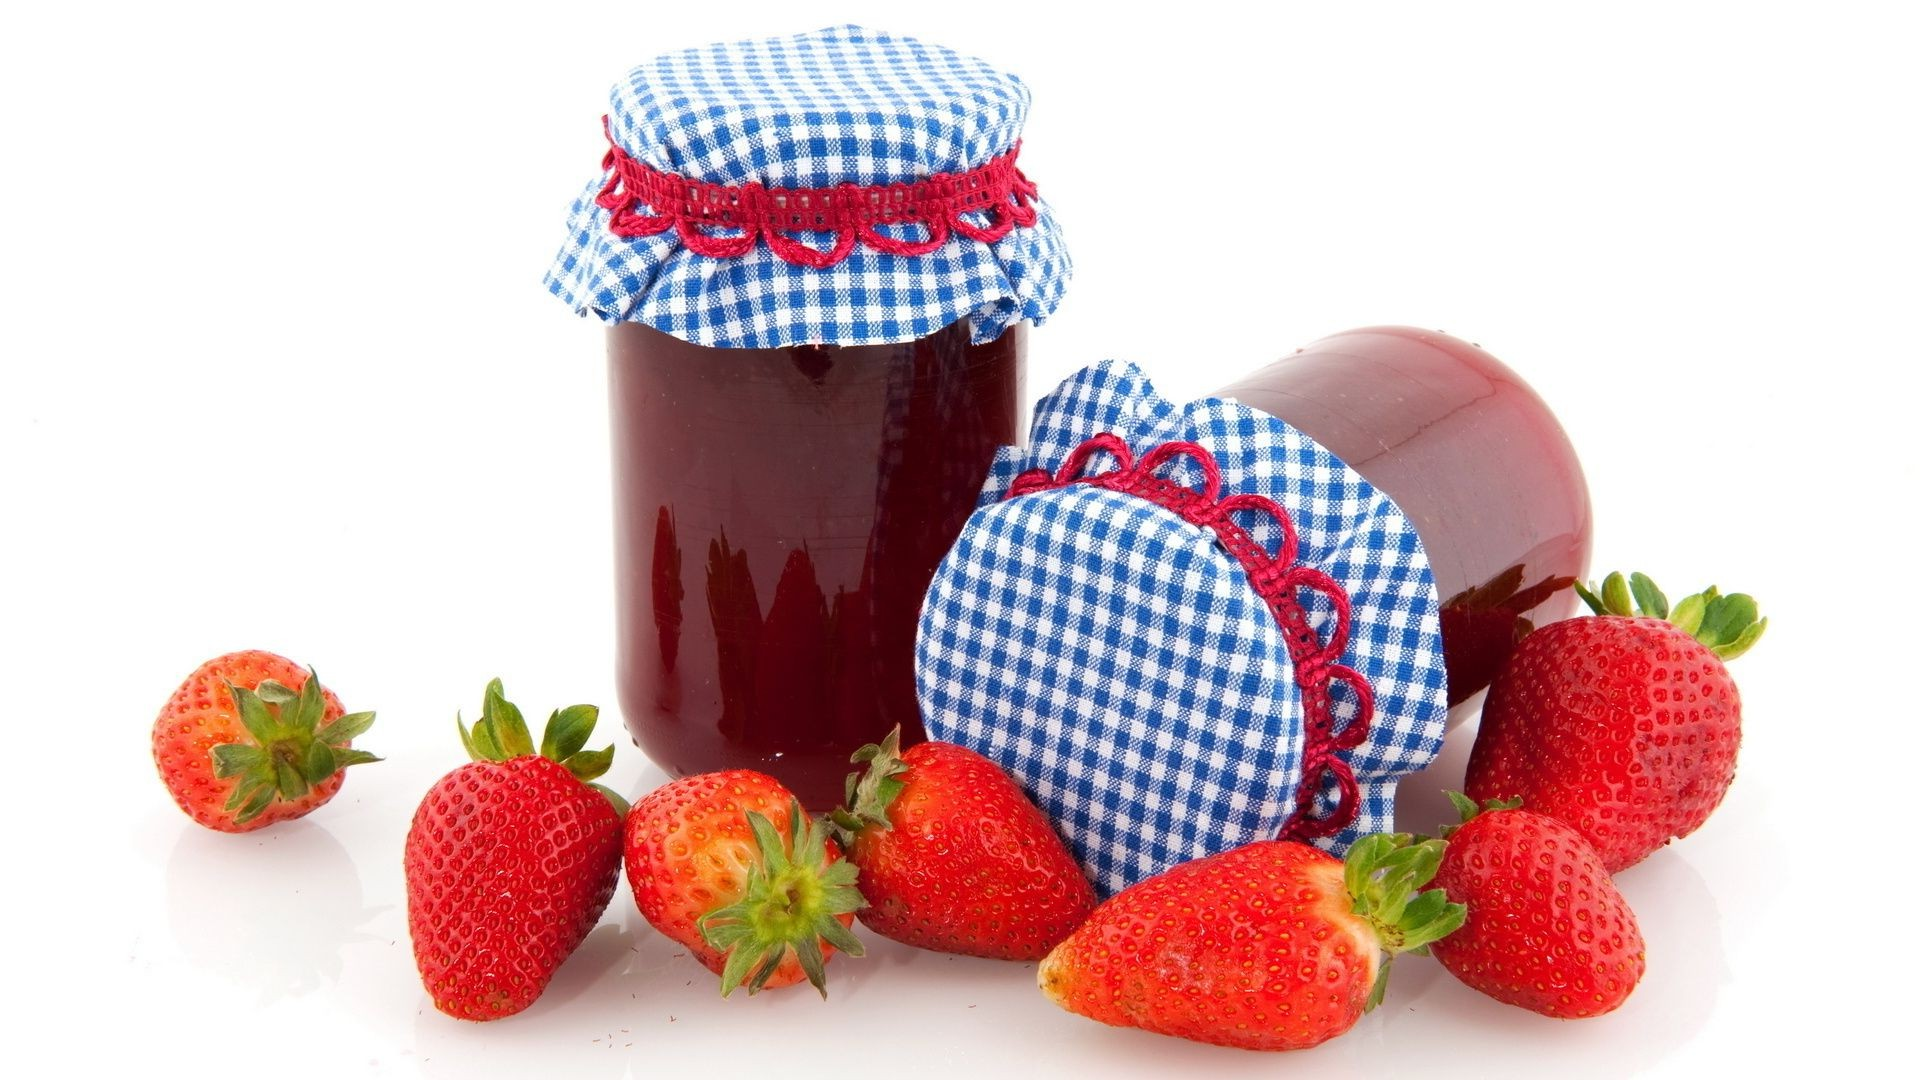 food & drink strawberry sweet food berry delicious jam fruit healthy marmalade nutrition jar refreshment health juicy summer breakfast tasty confection diet